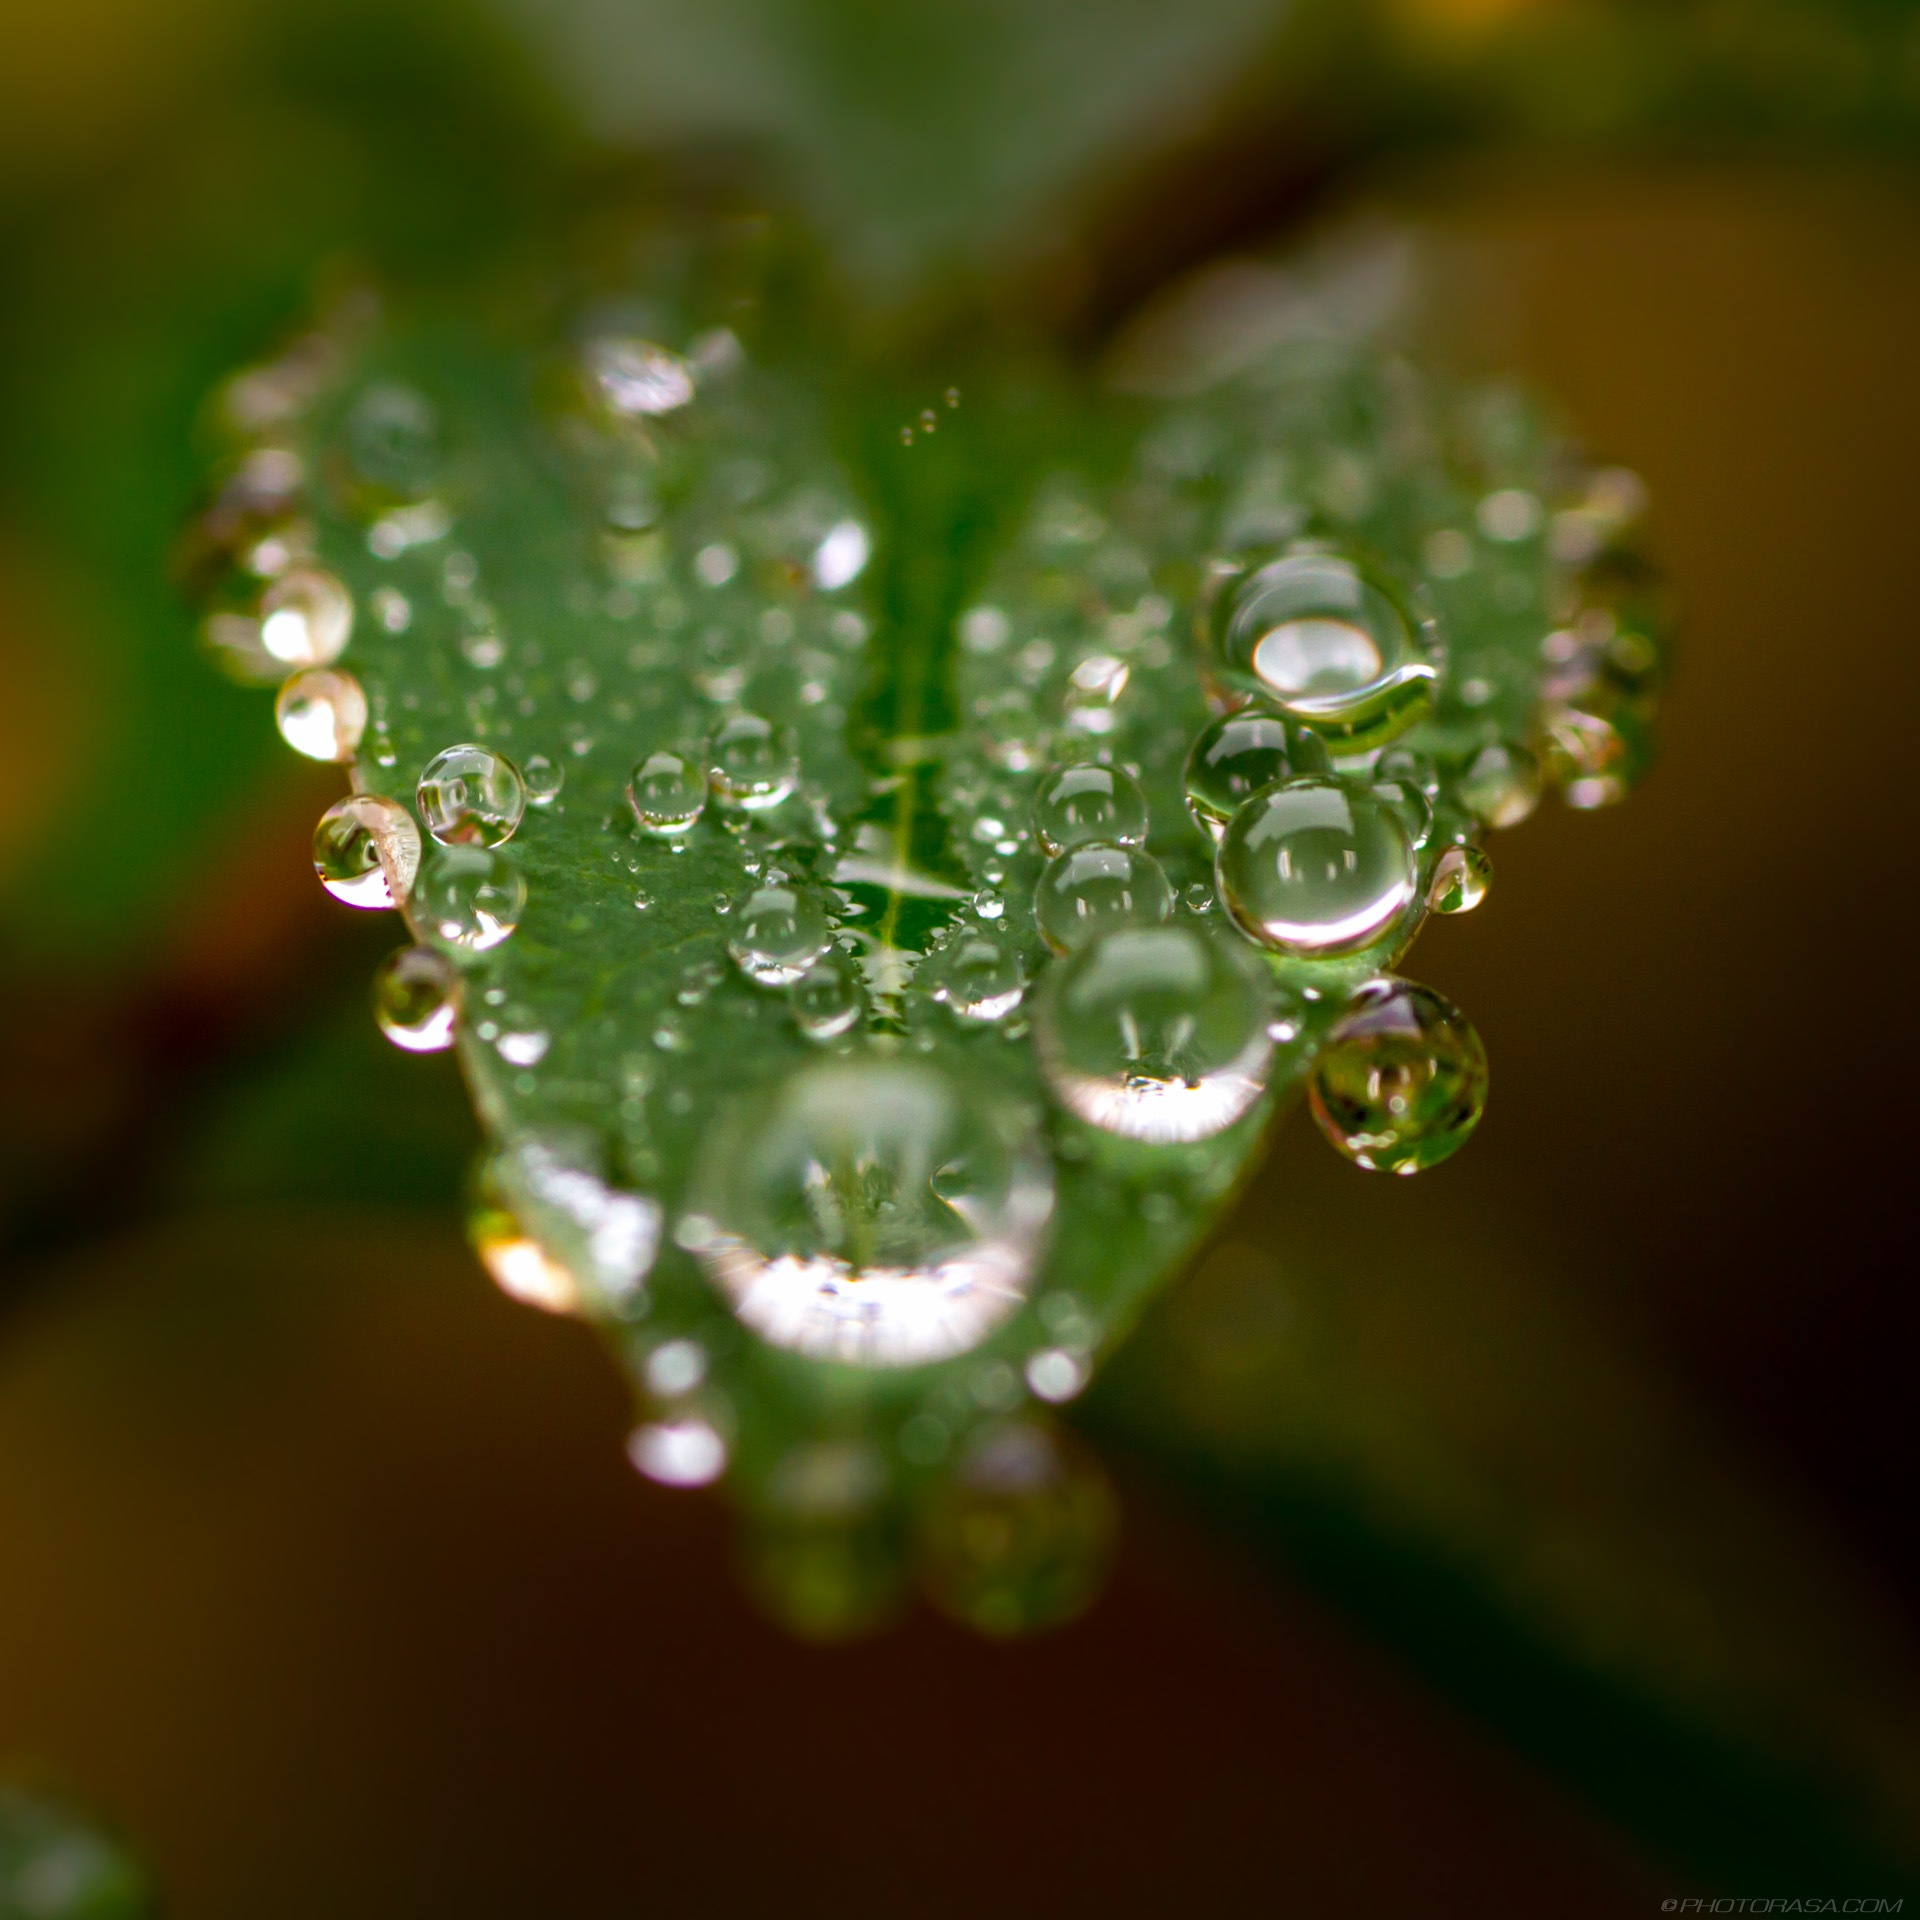 https://photorasa.com/dewdrops-tiny-leaves/macro-of-water-droplets-on-leaf/